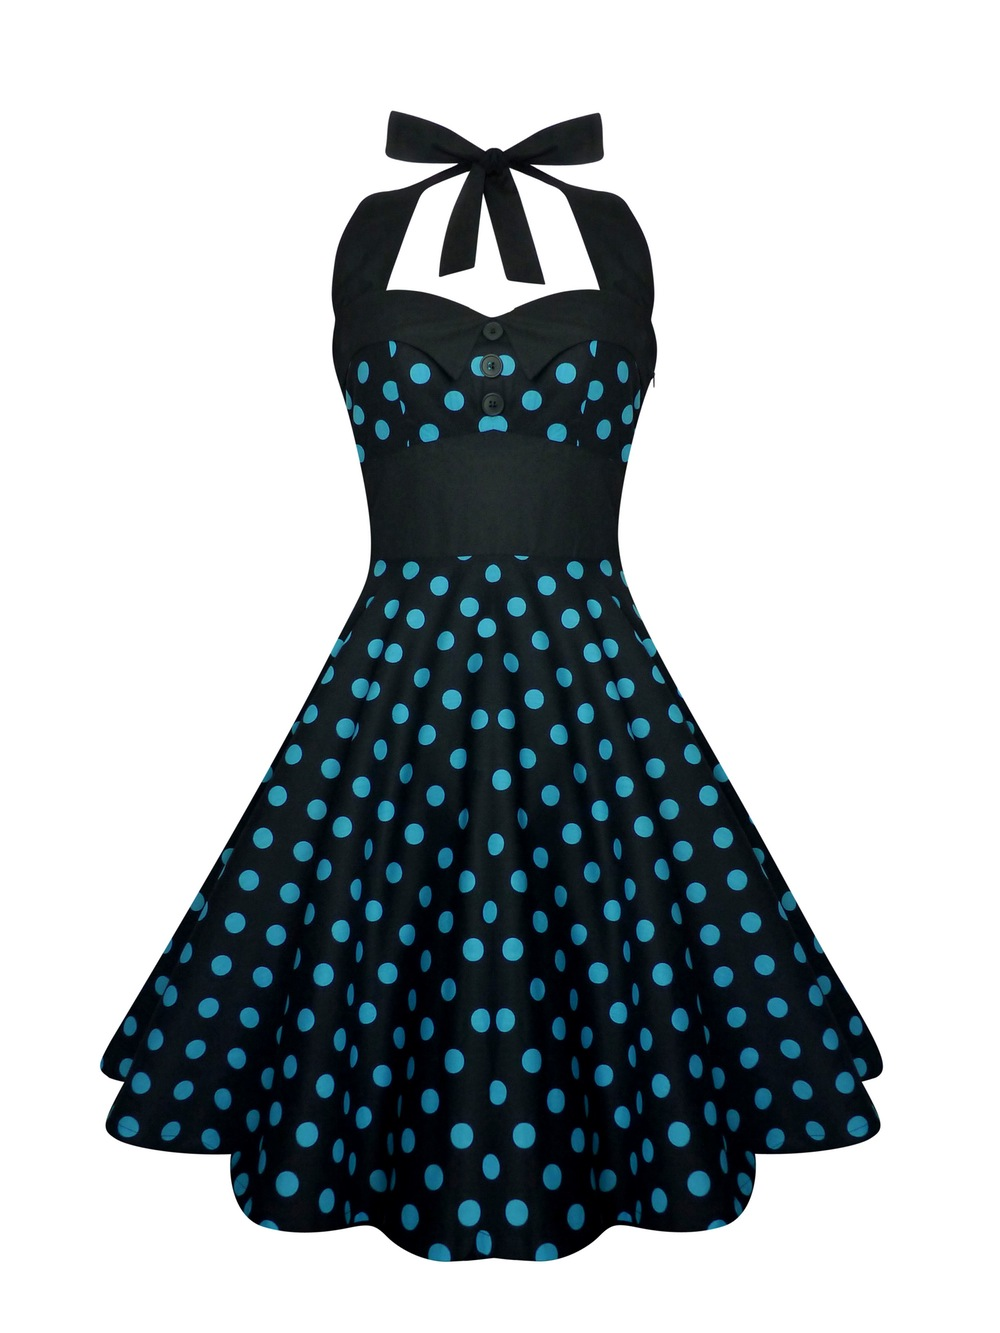 blue and black vintage inspired swing dress